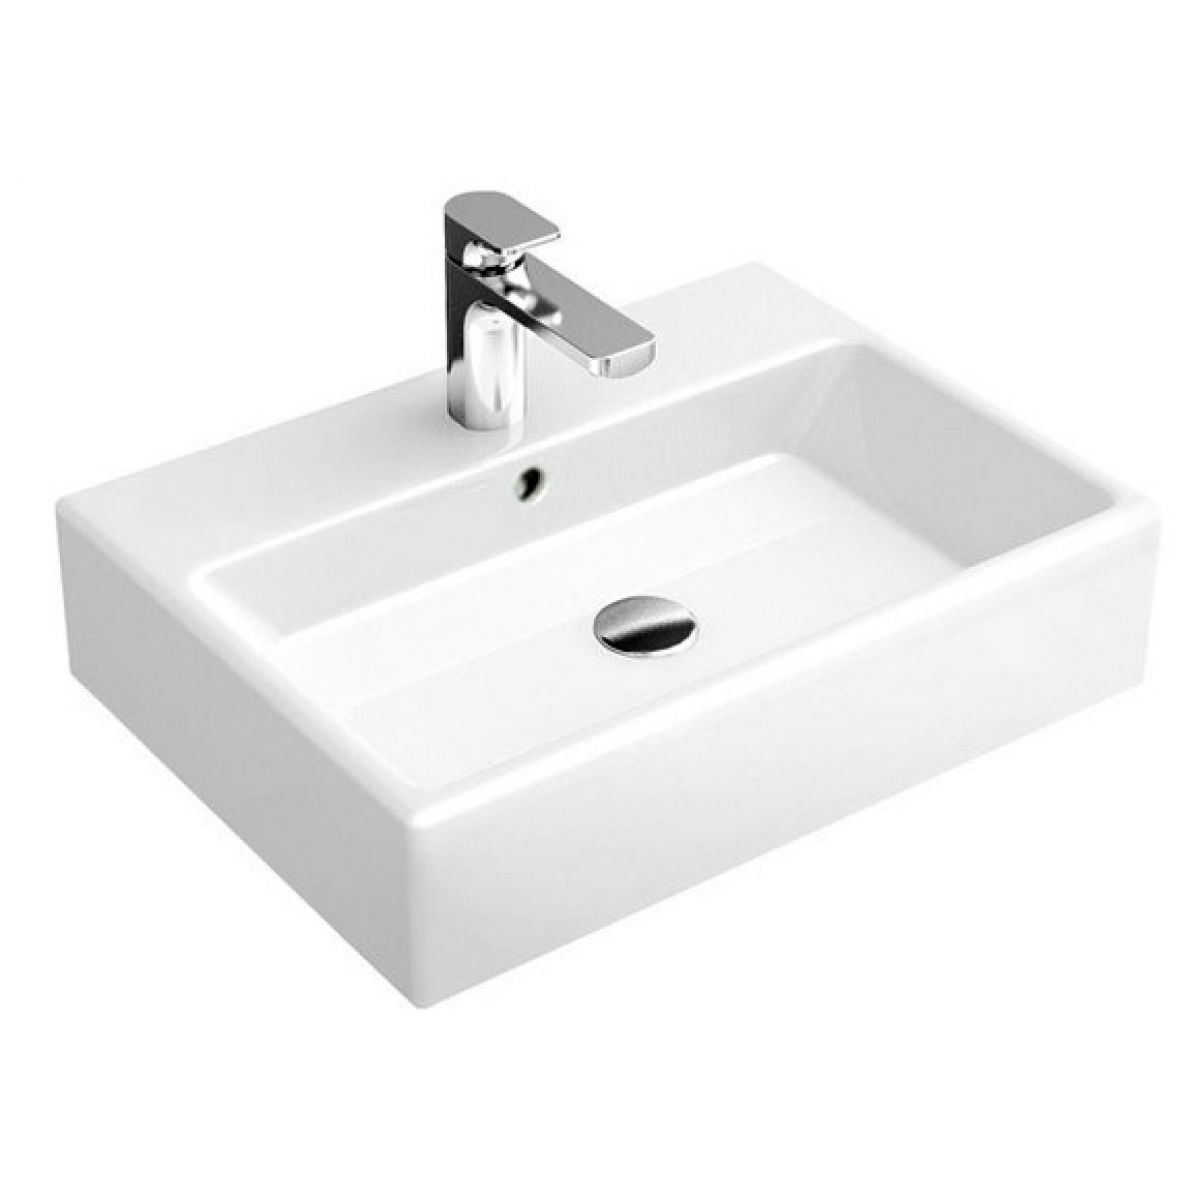 Villeroy boch 600mm memento washbasin uk bathrooms - Villeroy y bosch ...